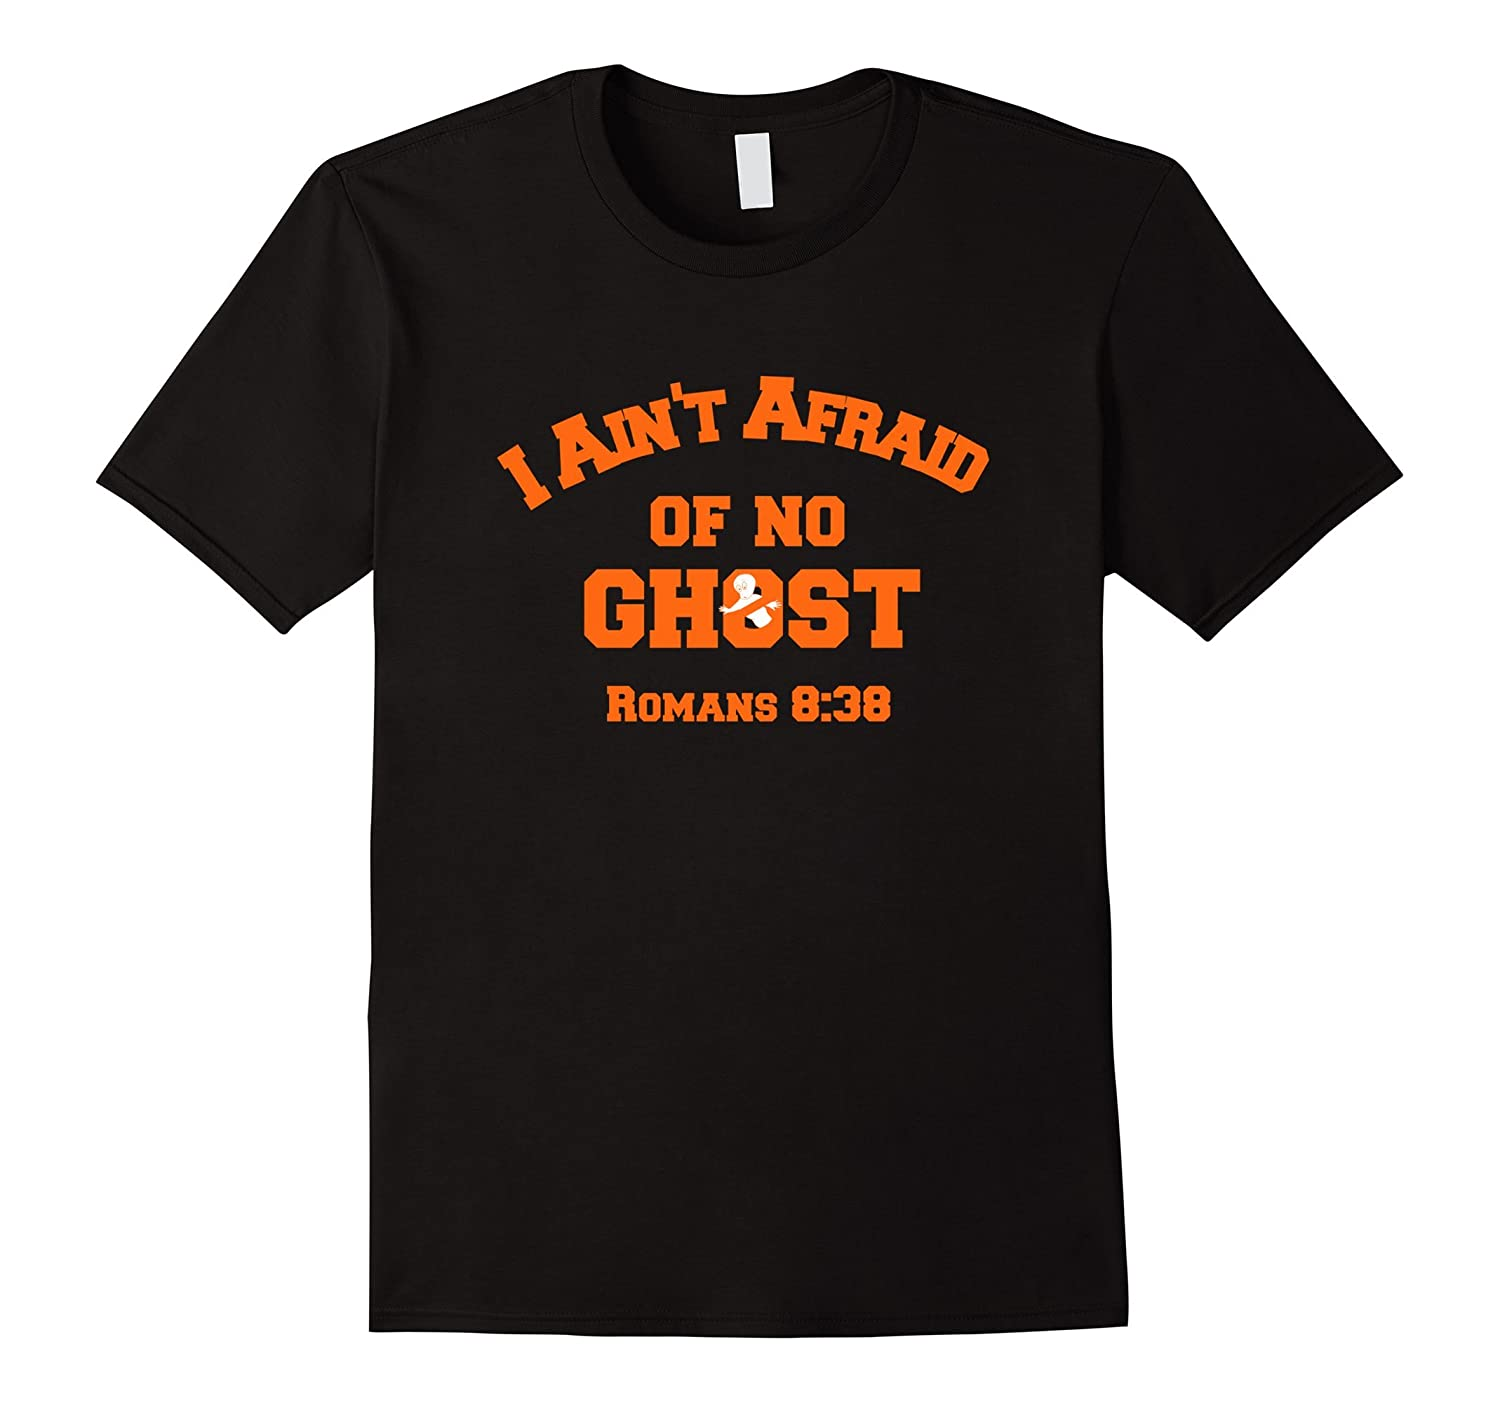 Halloween Tshirt for Christians - I ain't afraid of no ghost